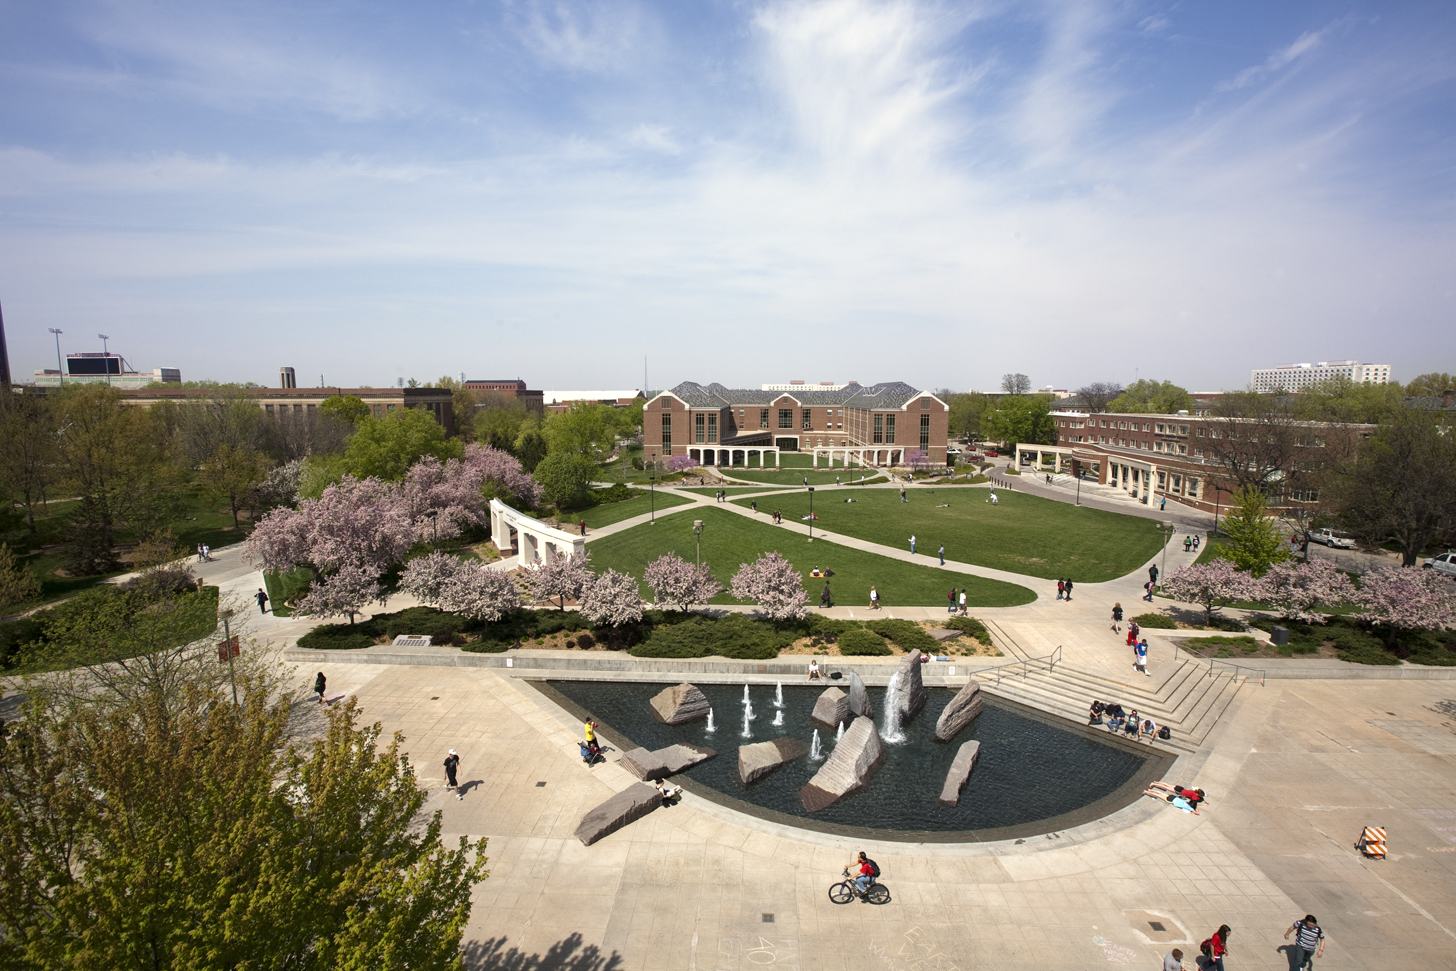 Overhead view of Broyhill Fountain in Union Plaza